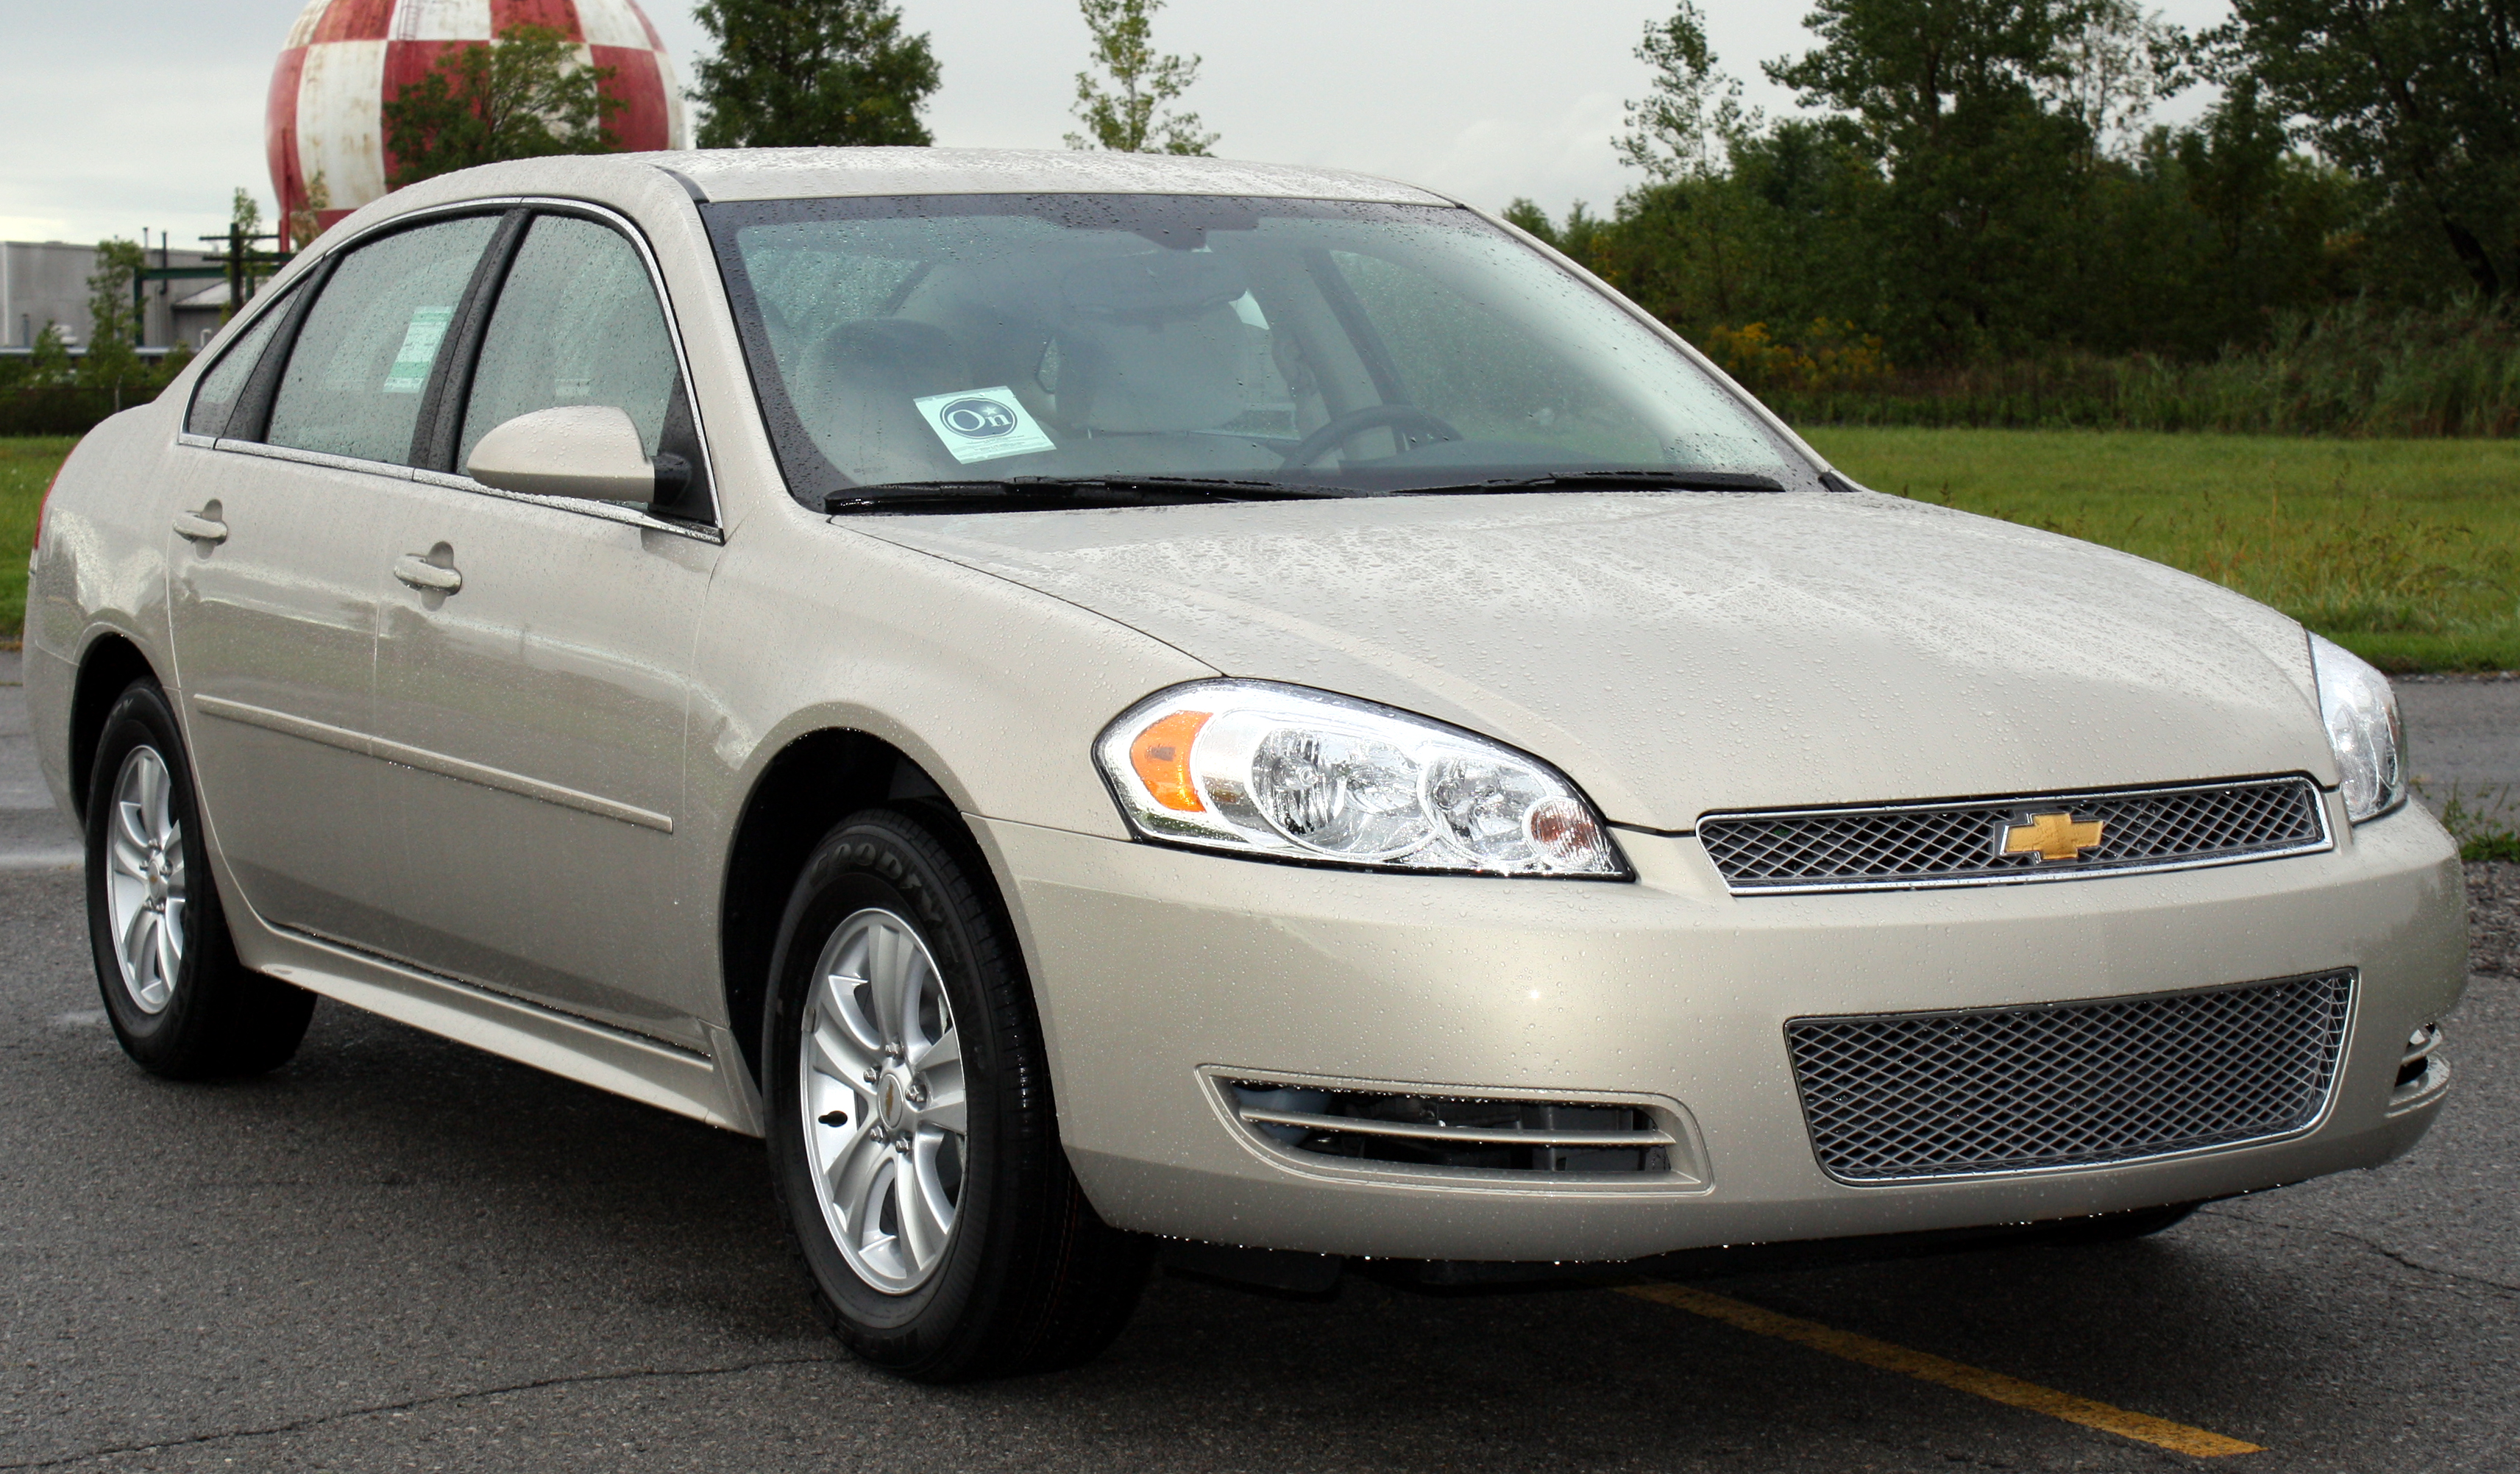 2012 chevrolet impala pictures information and specs. Black Bedroom Furniture Sets. Home Design Ideas